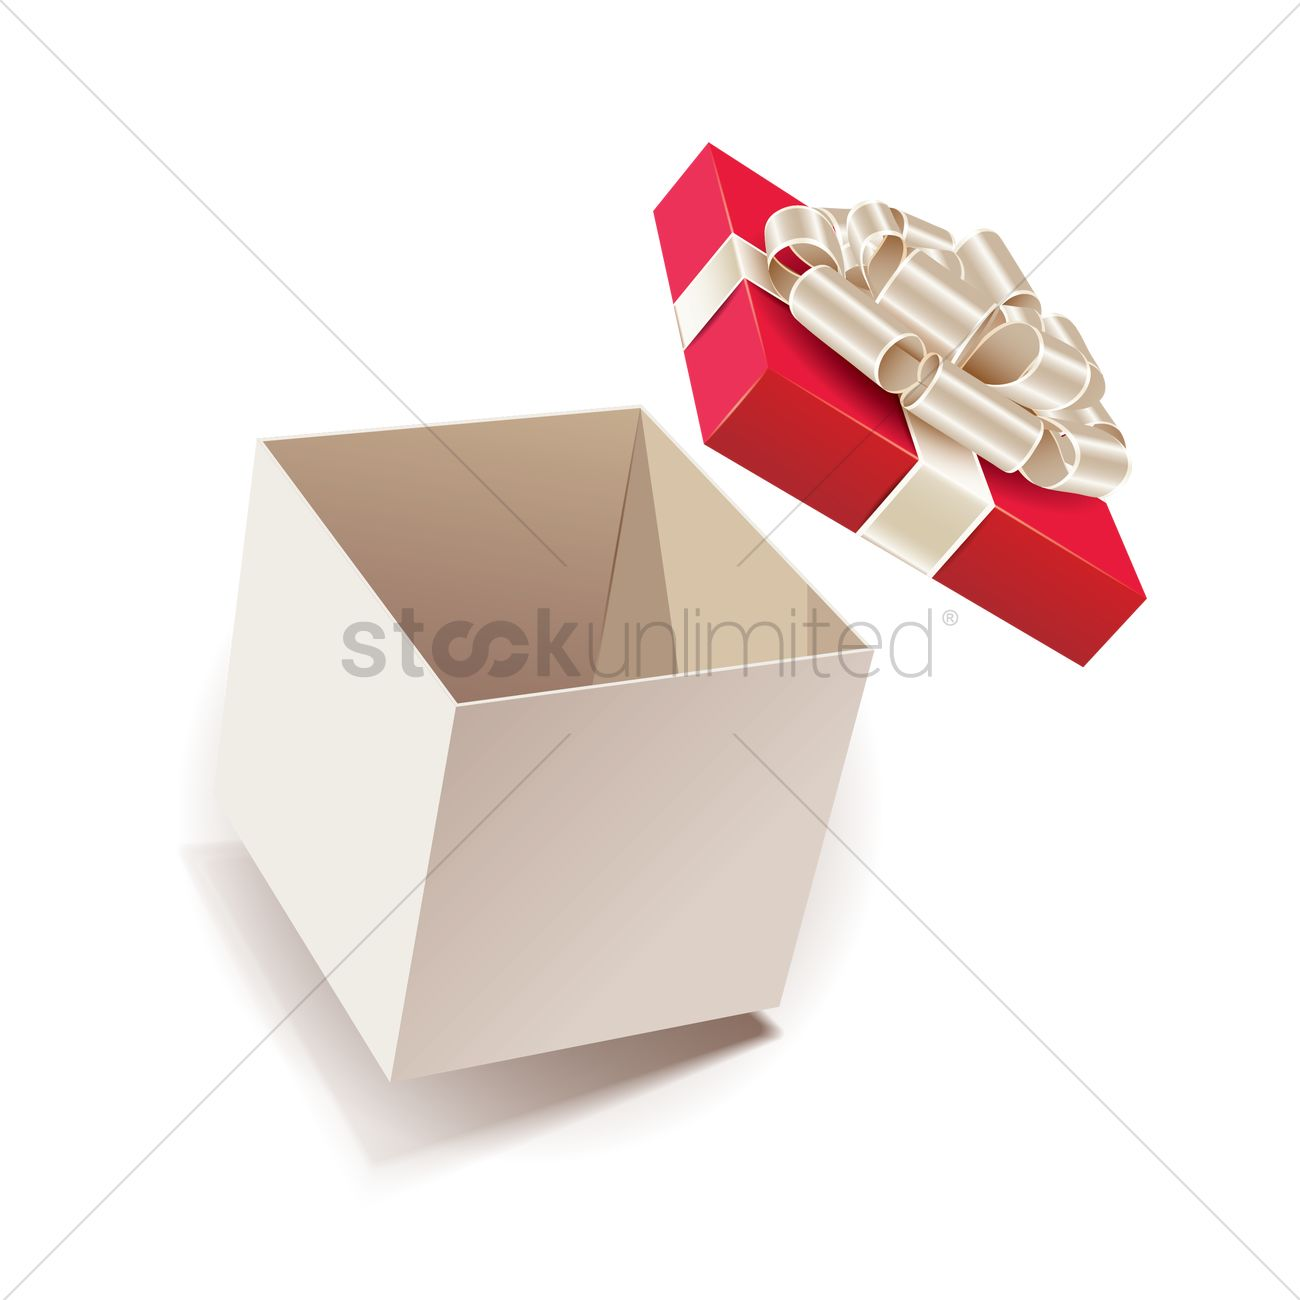 d7f23c48cfa3e Opened gift box Vector Image - 1934297